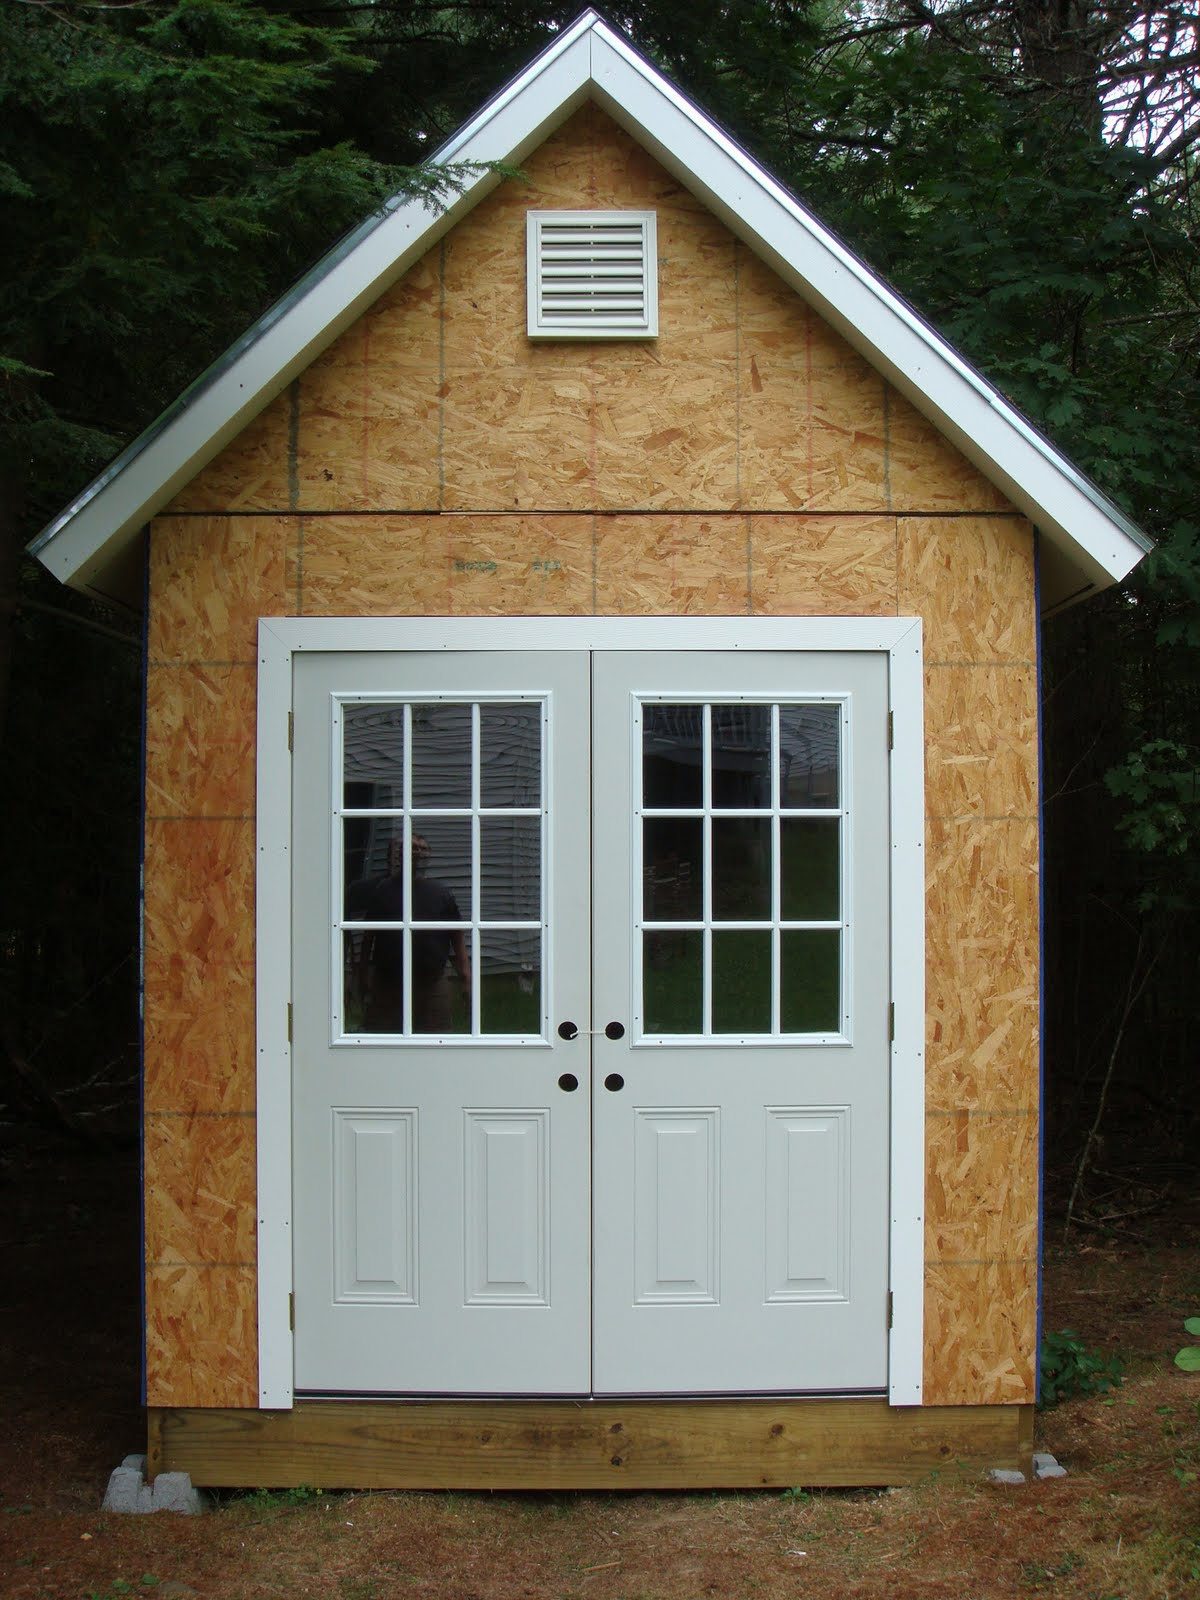 Diy building shed door design tips cool shed deisgn Design shed